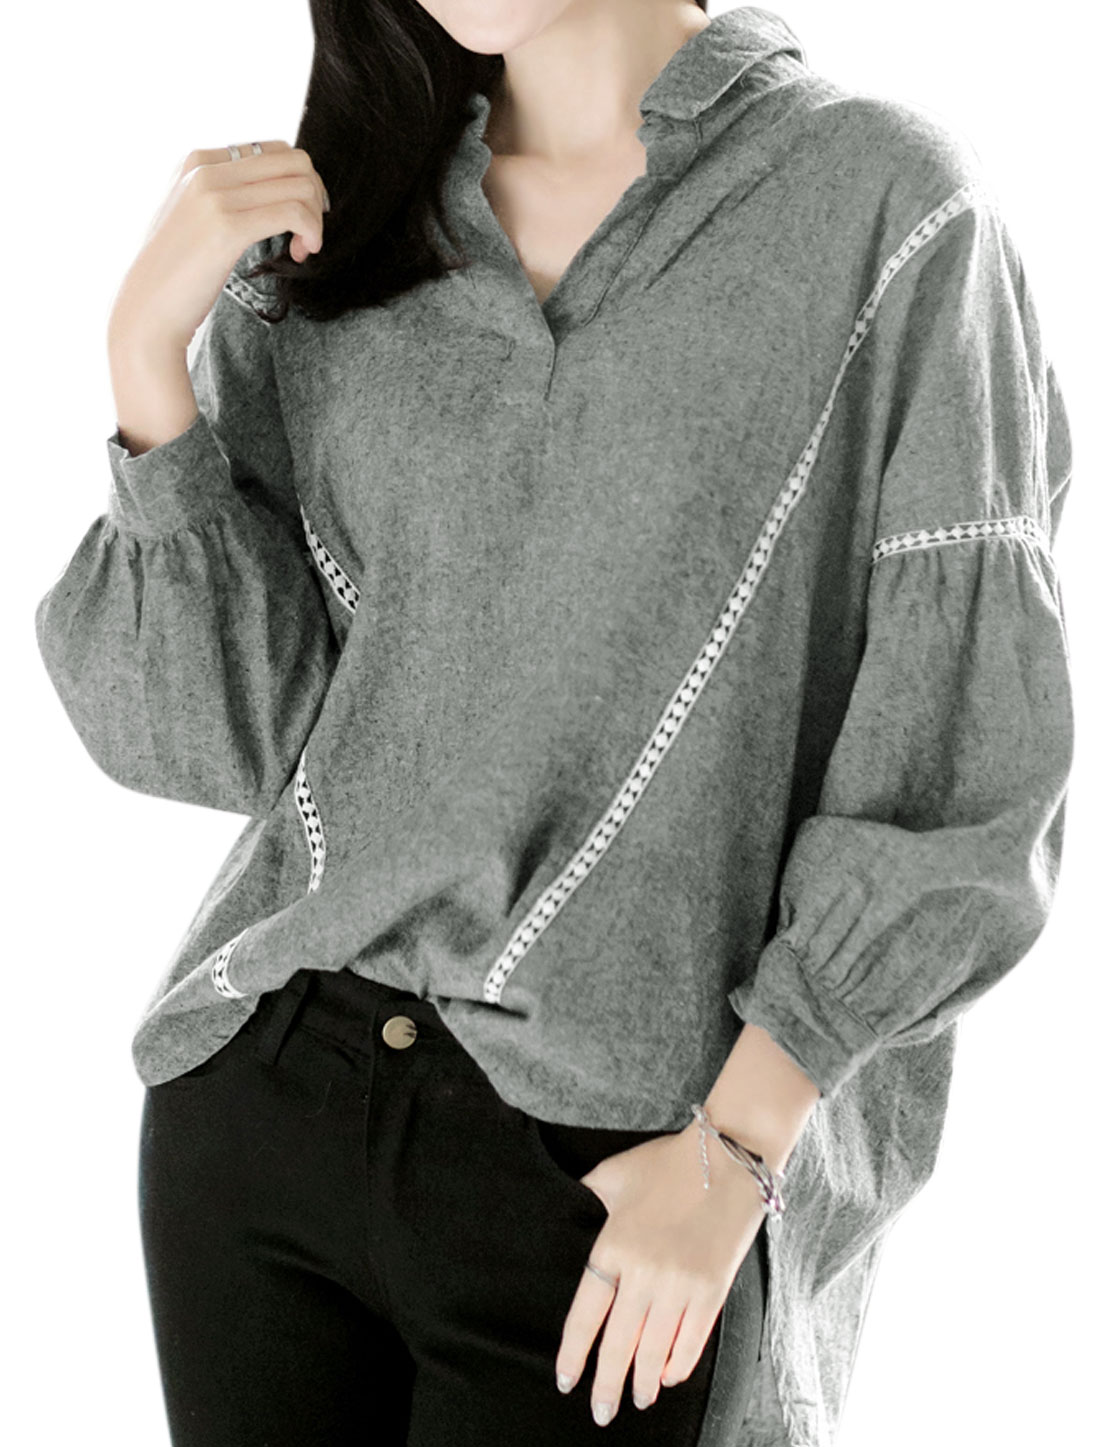 Woman Collared Bishop Hollow Out Low High Hem Blouse Gray XS